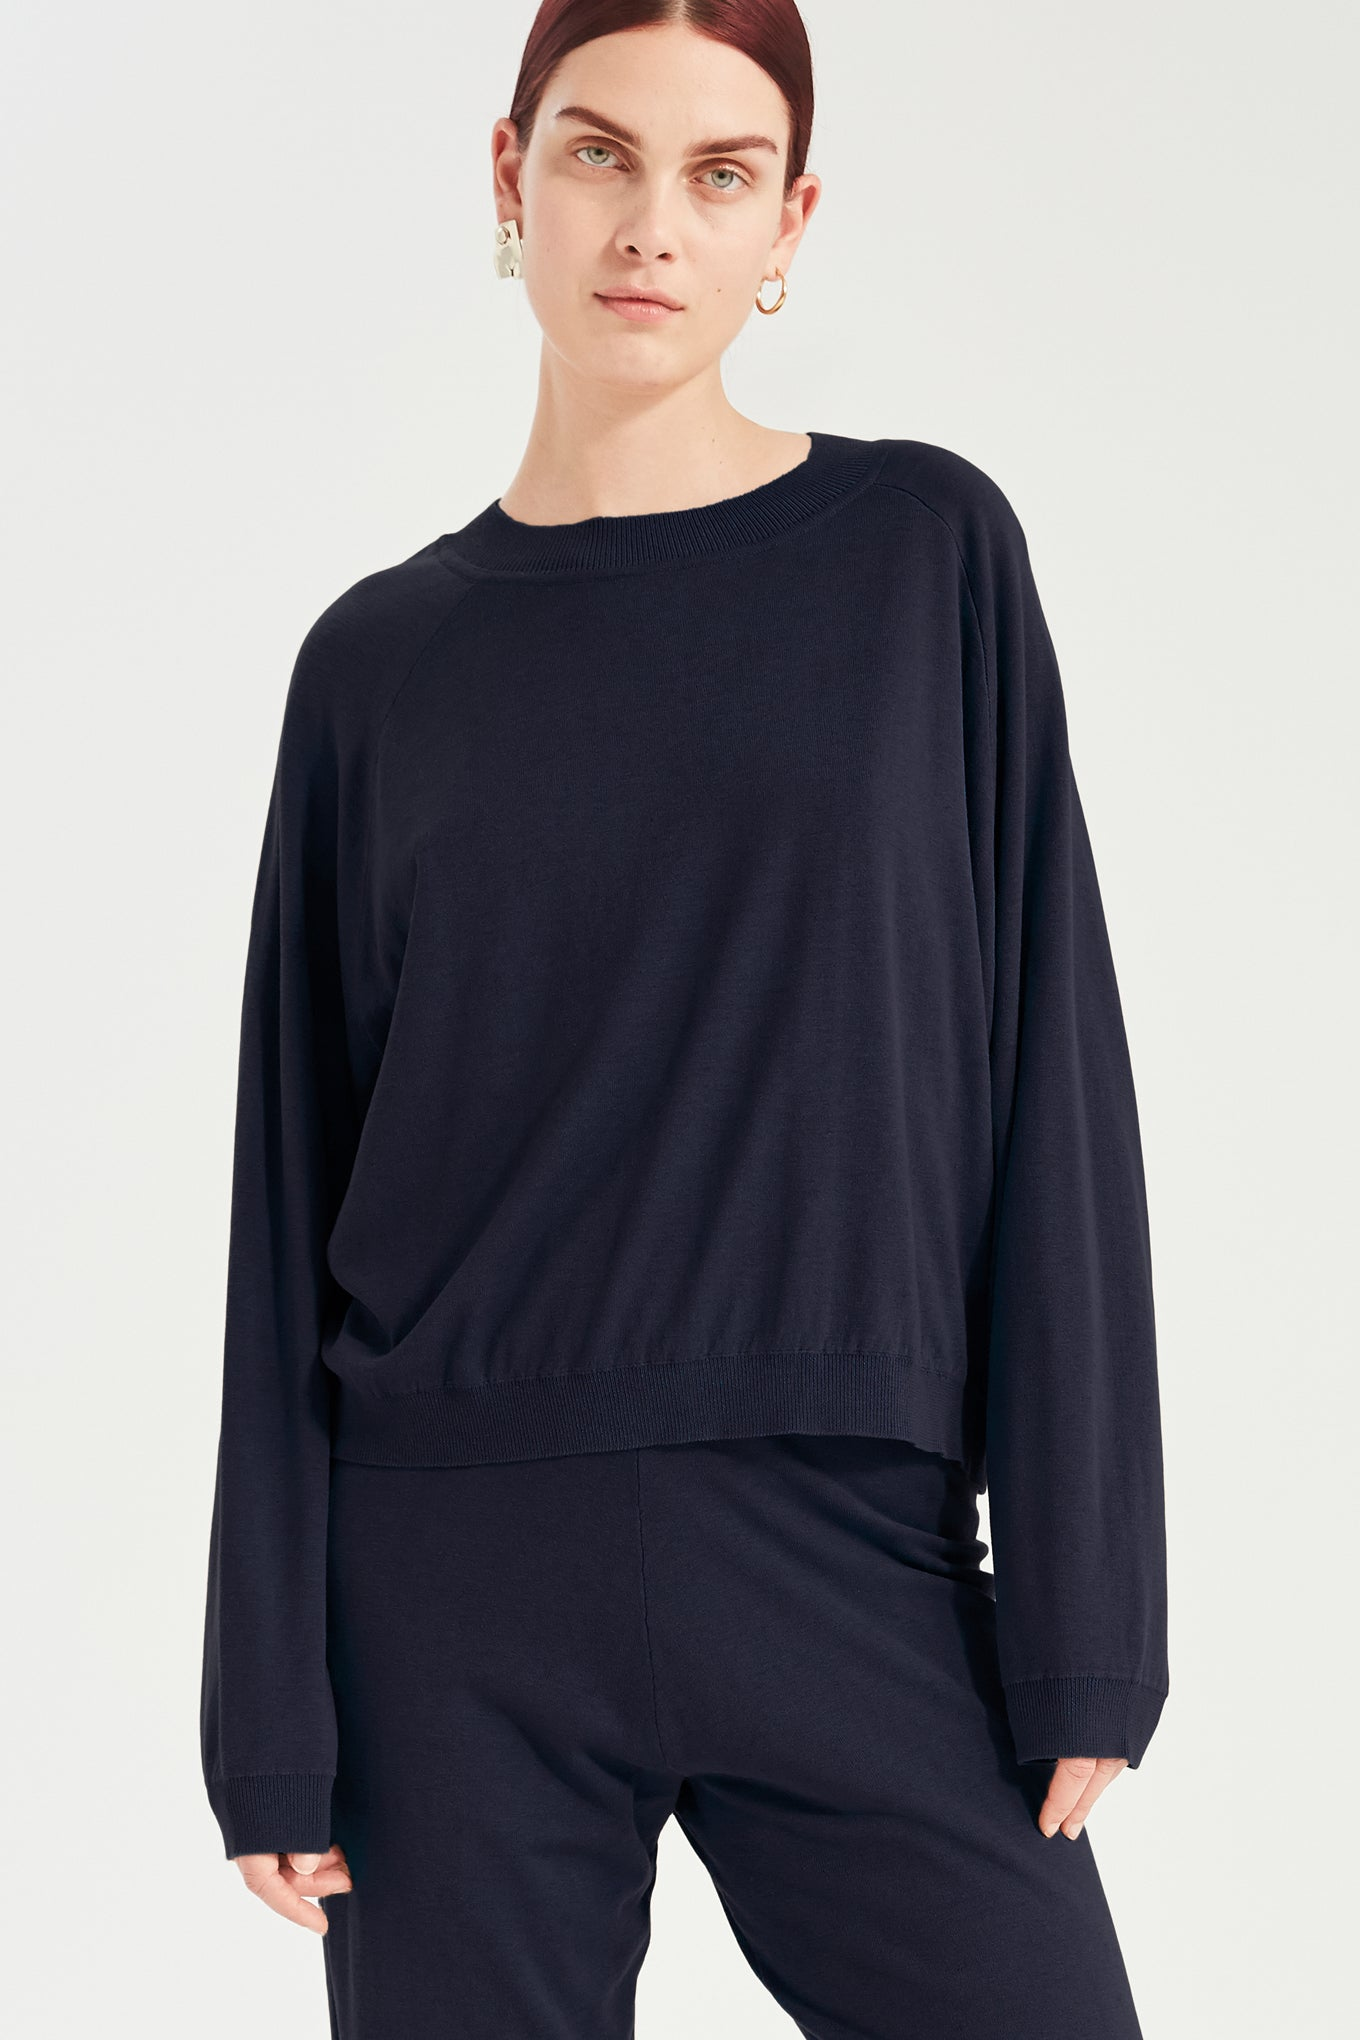 Kelly Knit - Navy - Silk/Cotton